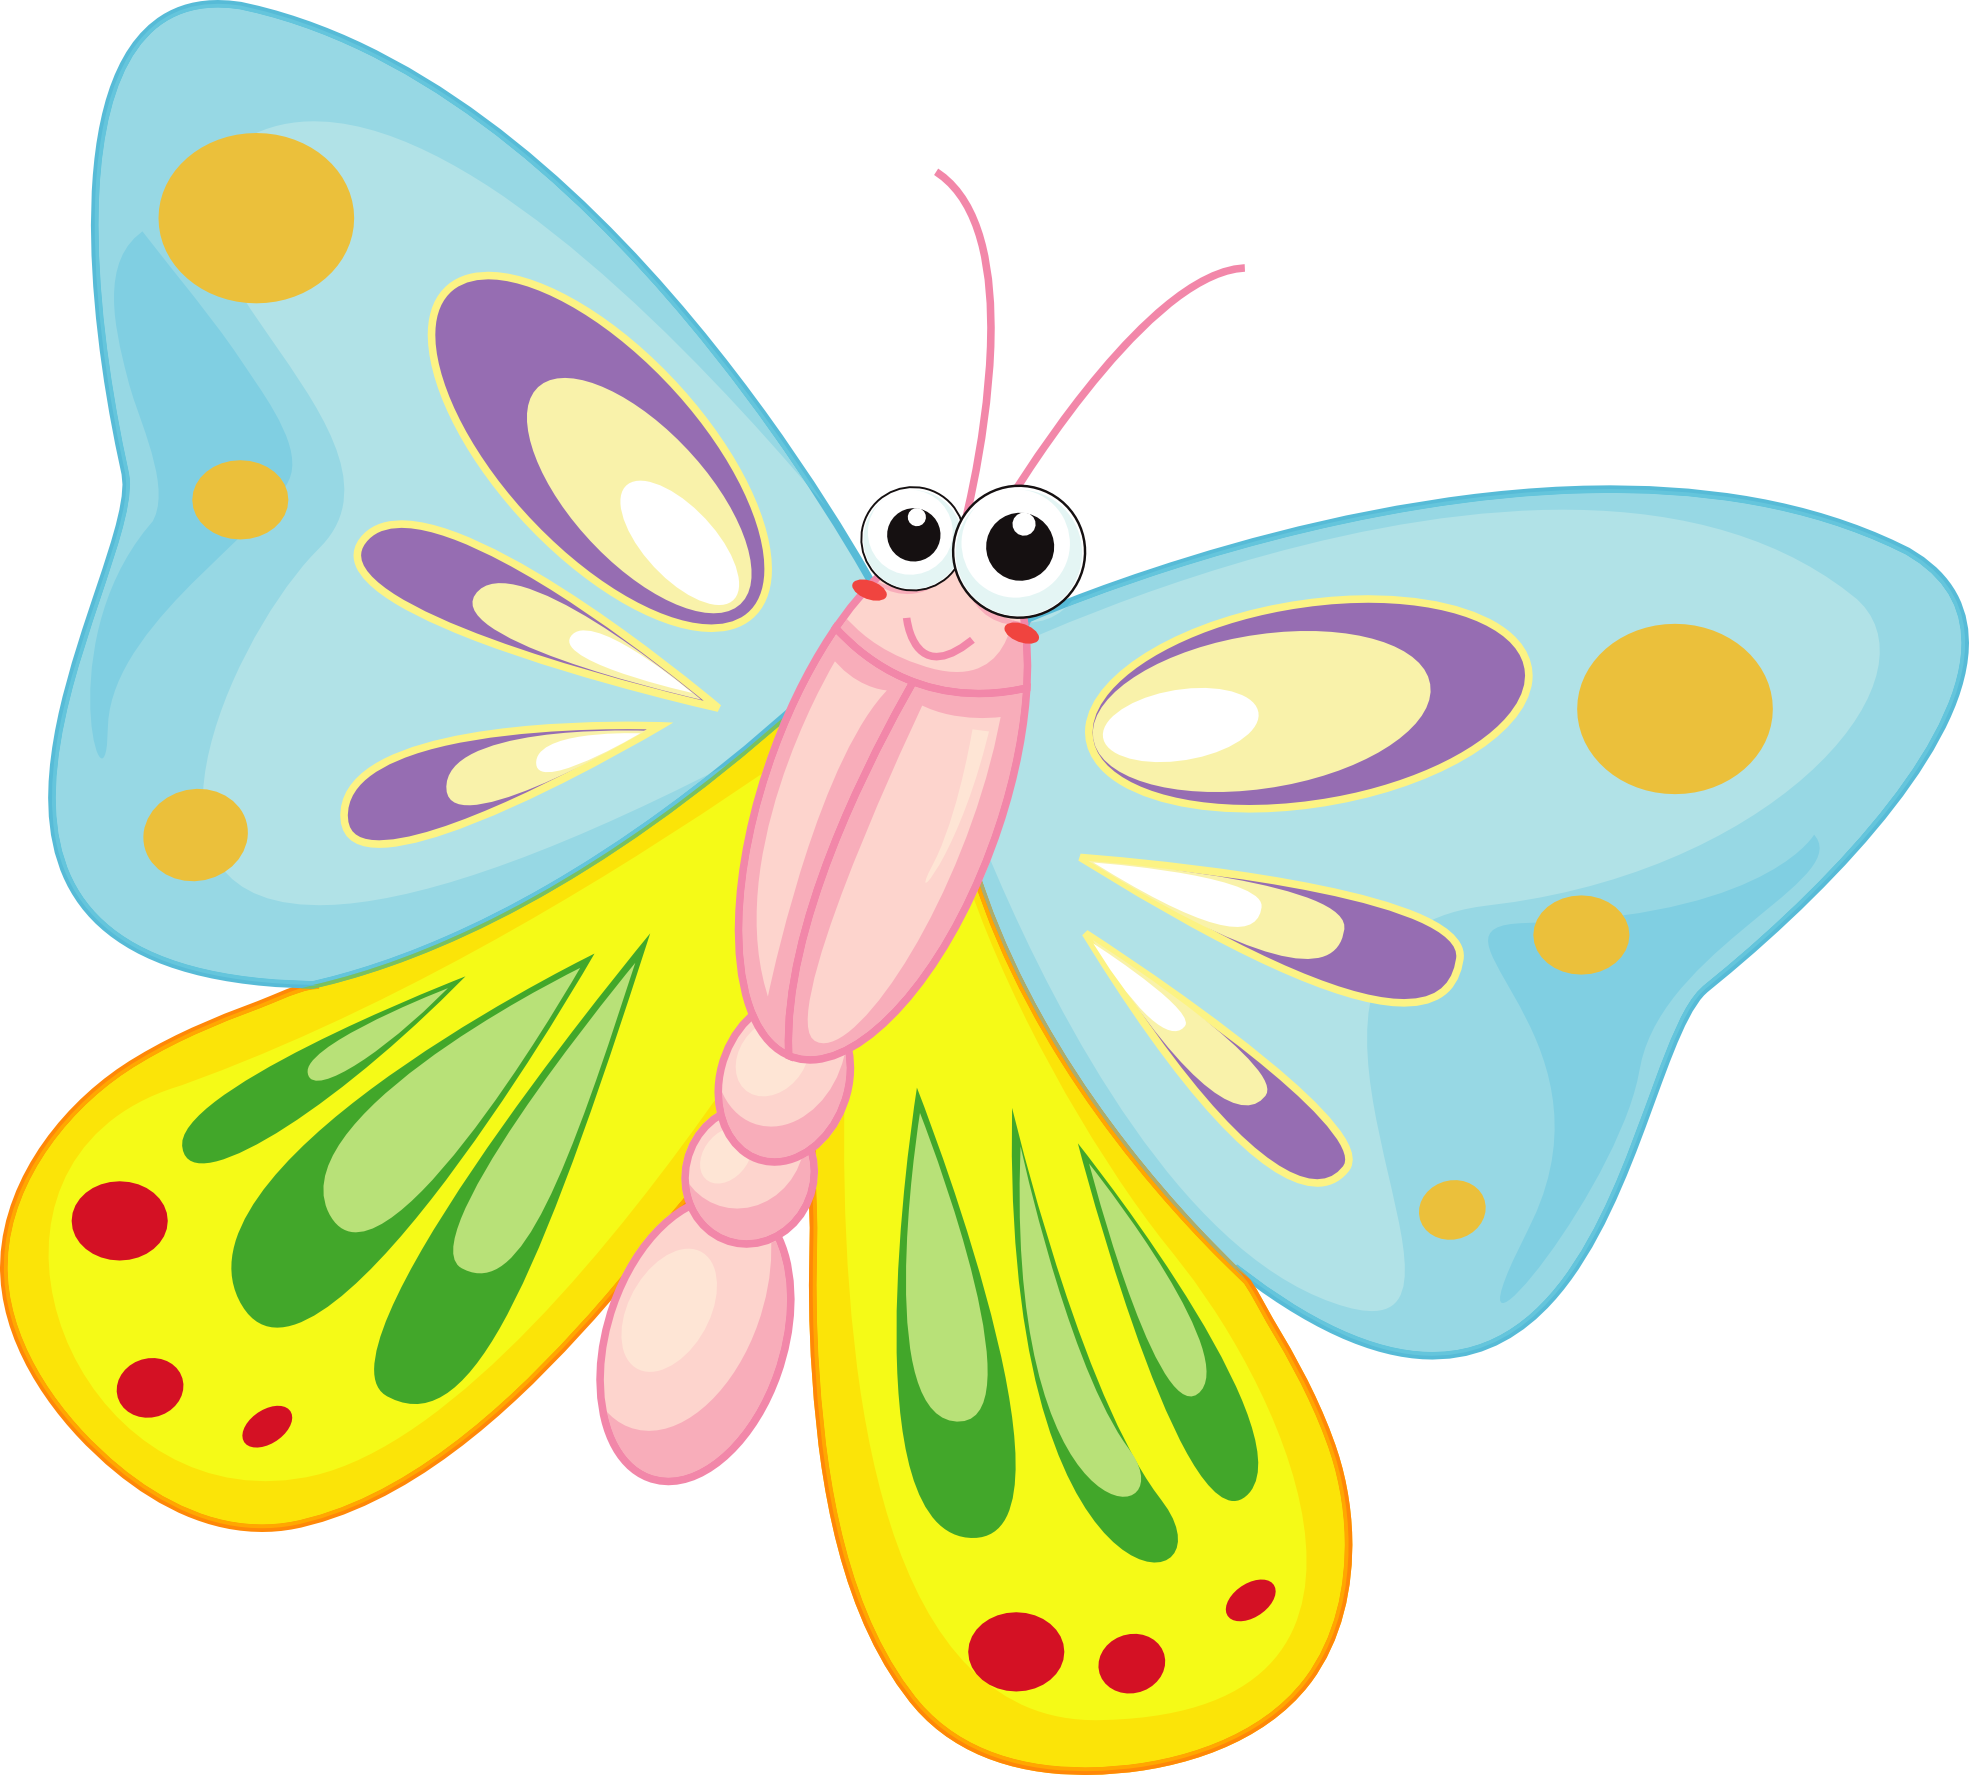 Clipart images for april butterflies. Cartoon pictures of butterfly